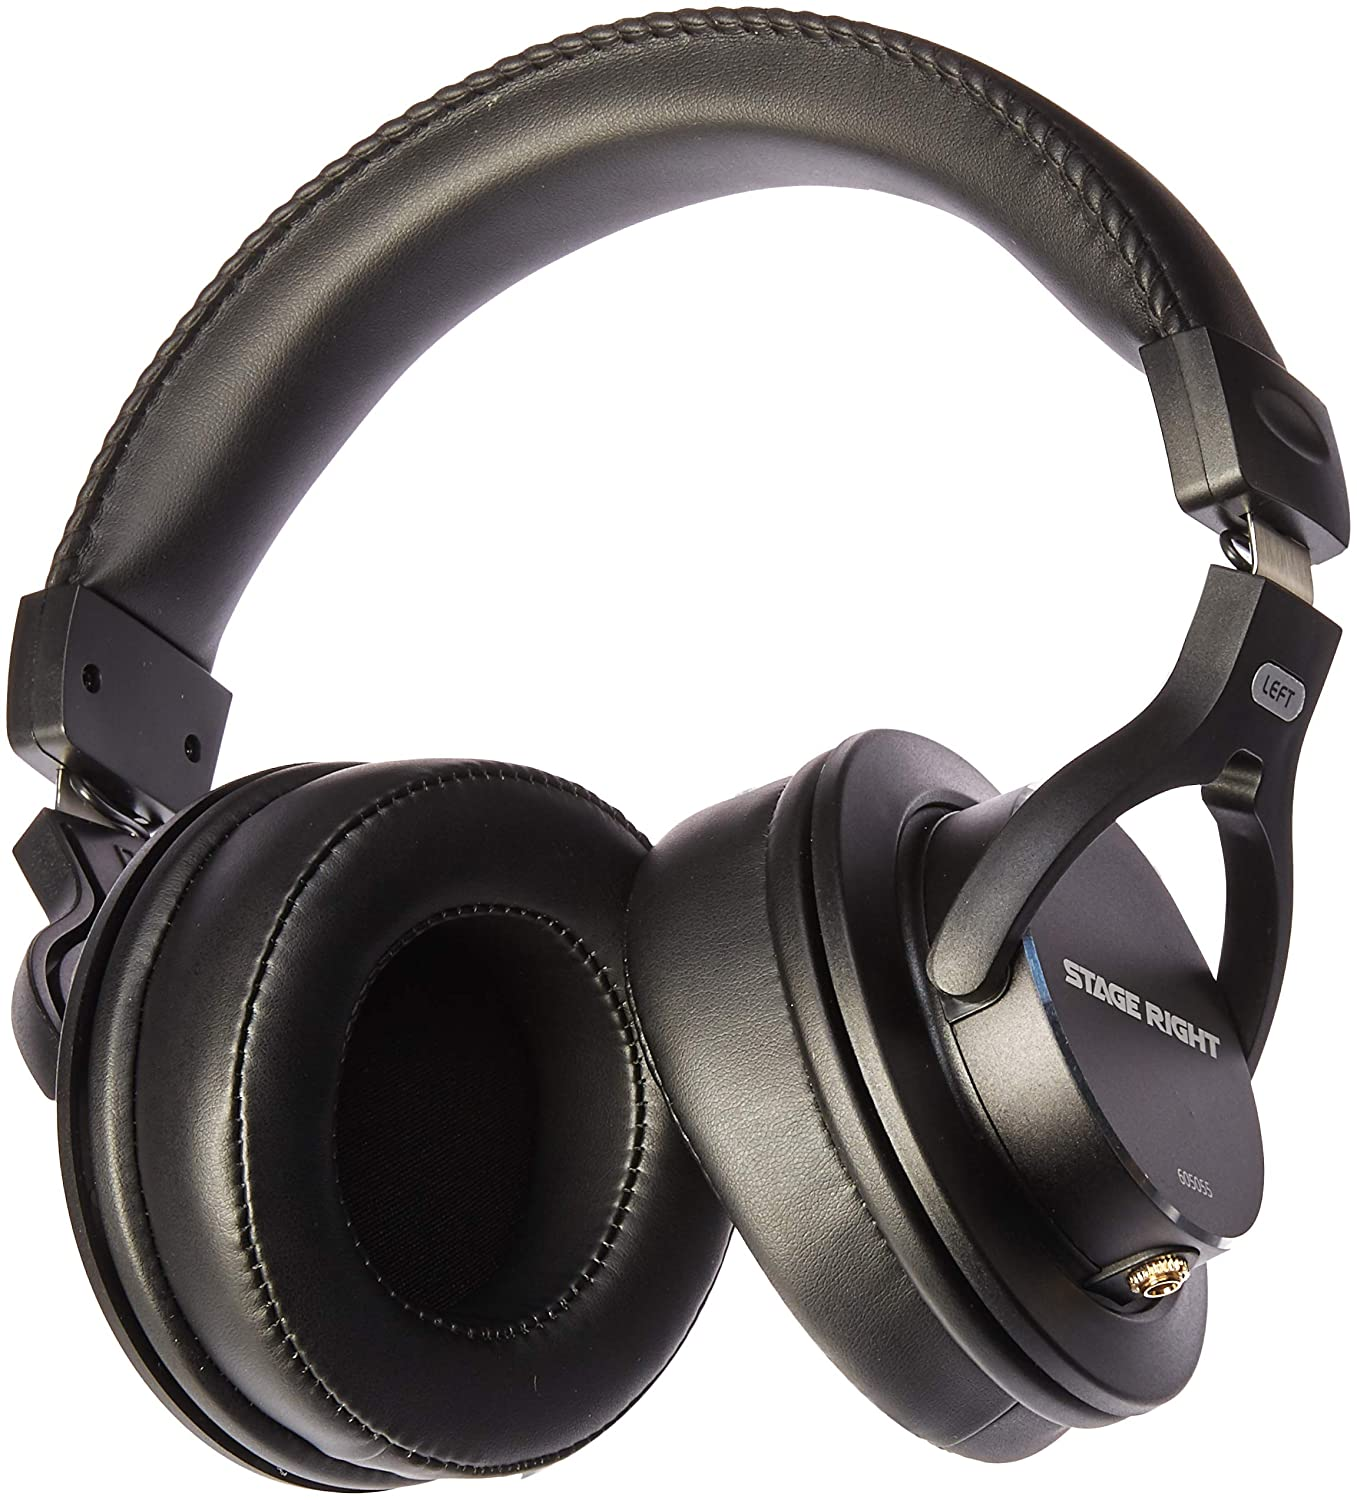 801952a918b Amazon.com: Monoprice Multimedia Studio Reference Monitor Headphones - 53mm  | Closed-Back - Stage Right Series: Electronics